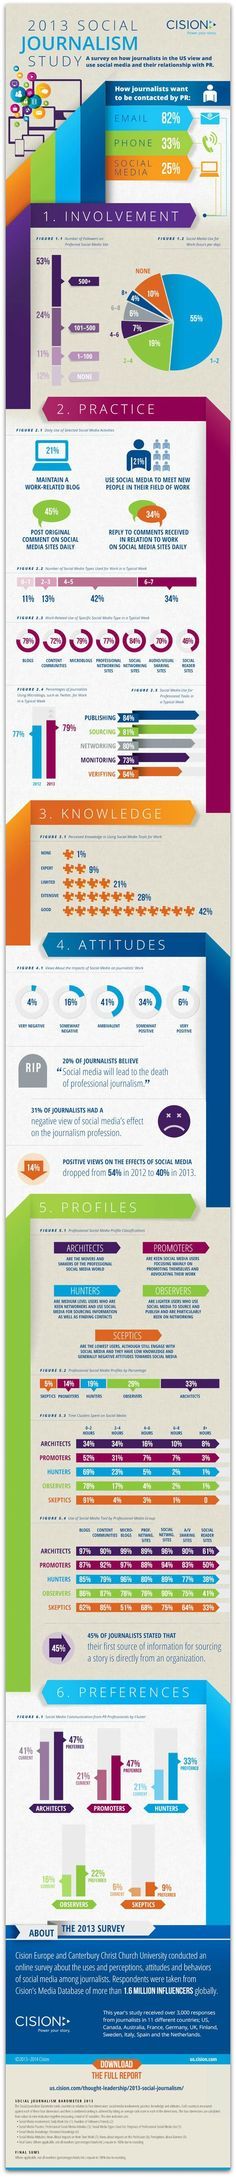 Infographic: How journalists use social media